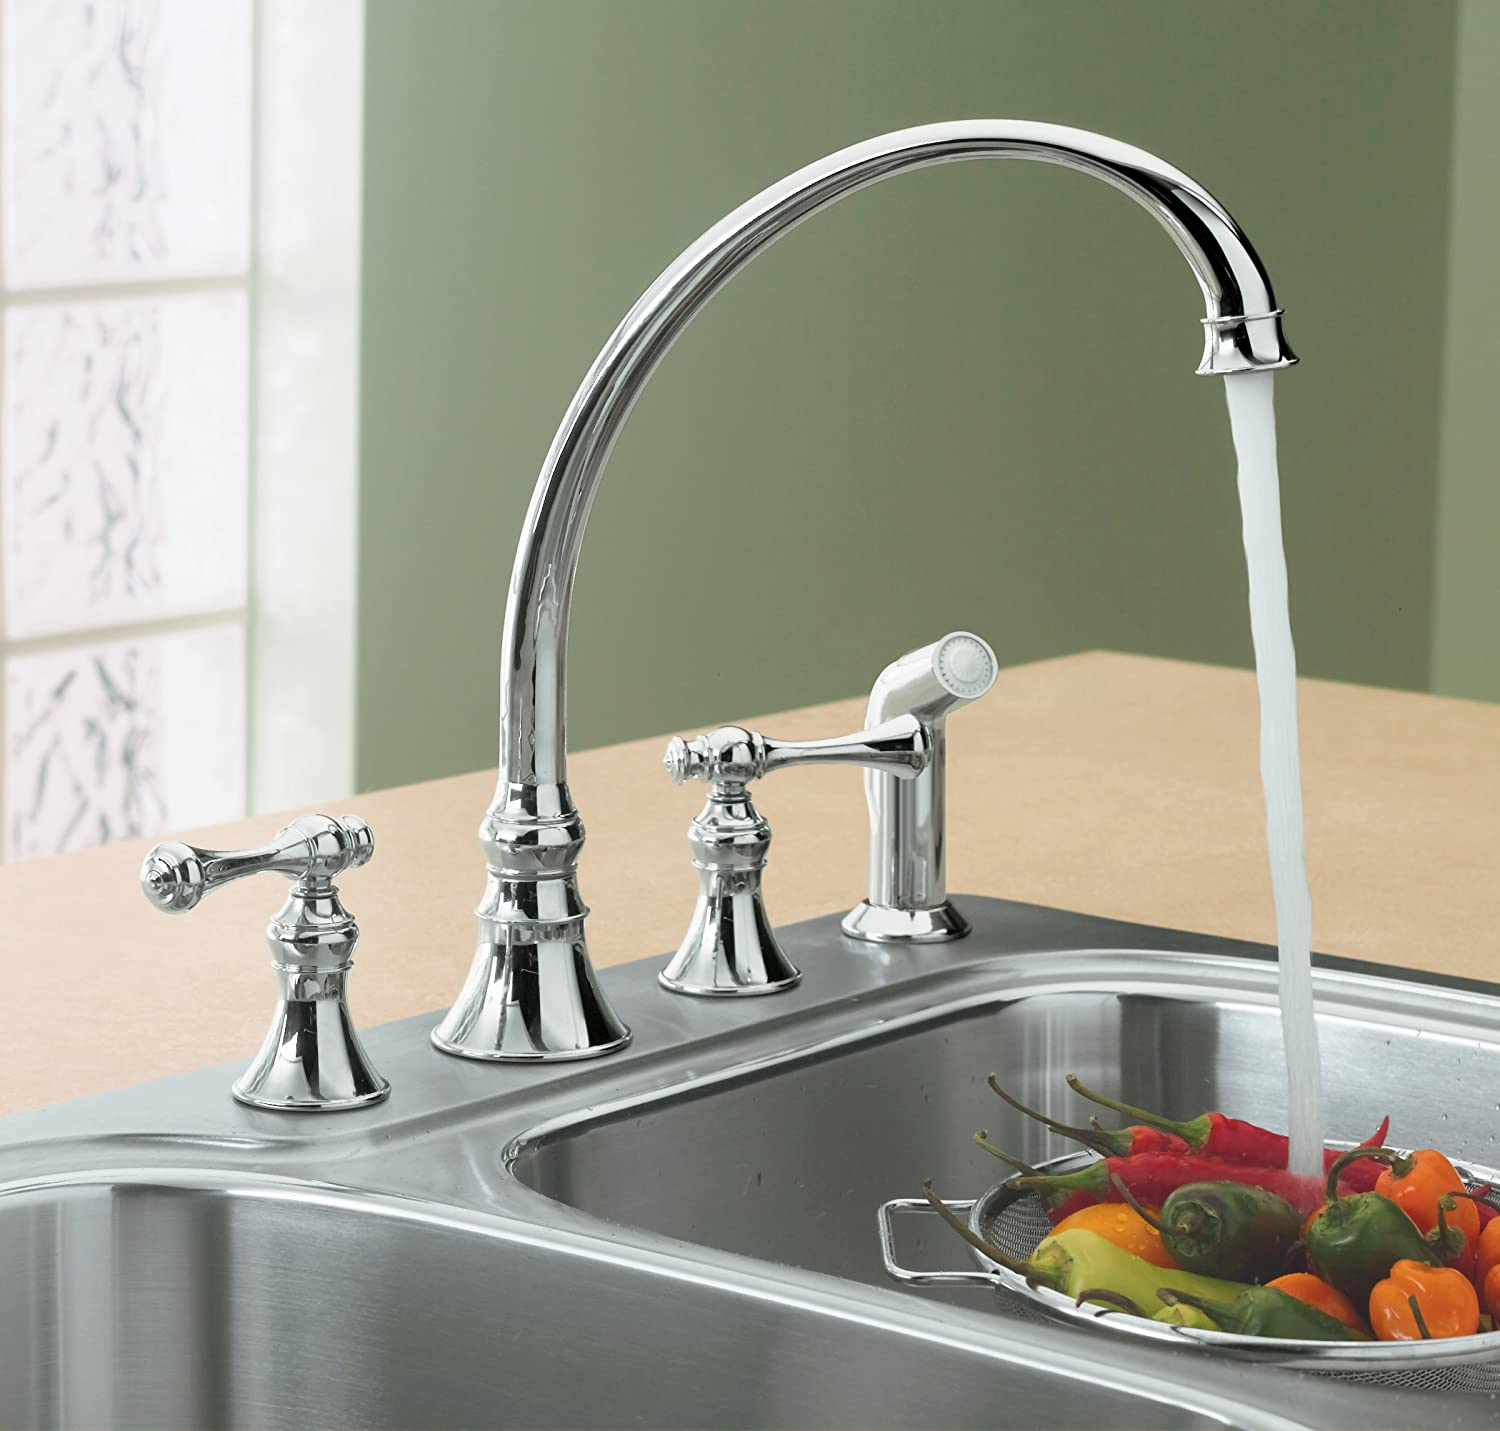 KOHLER K 4A CP Revival Kitchen Sink Faucet Polished Chrome